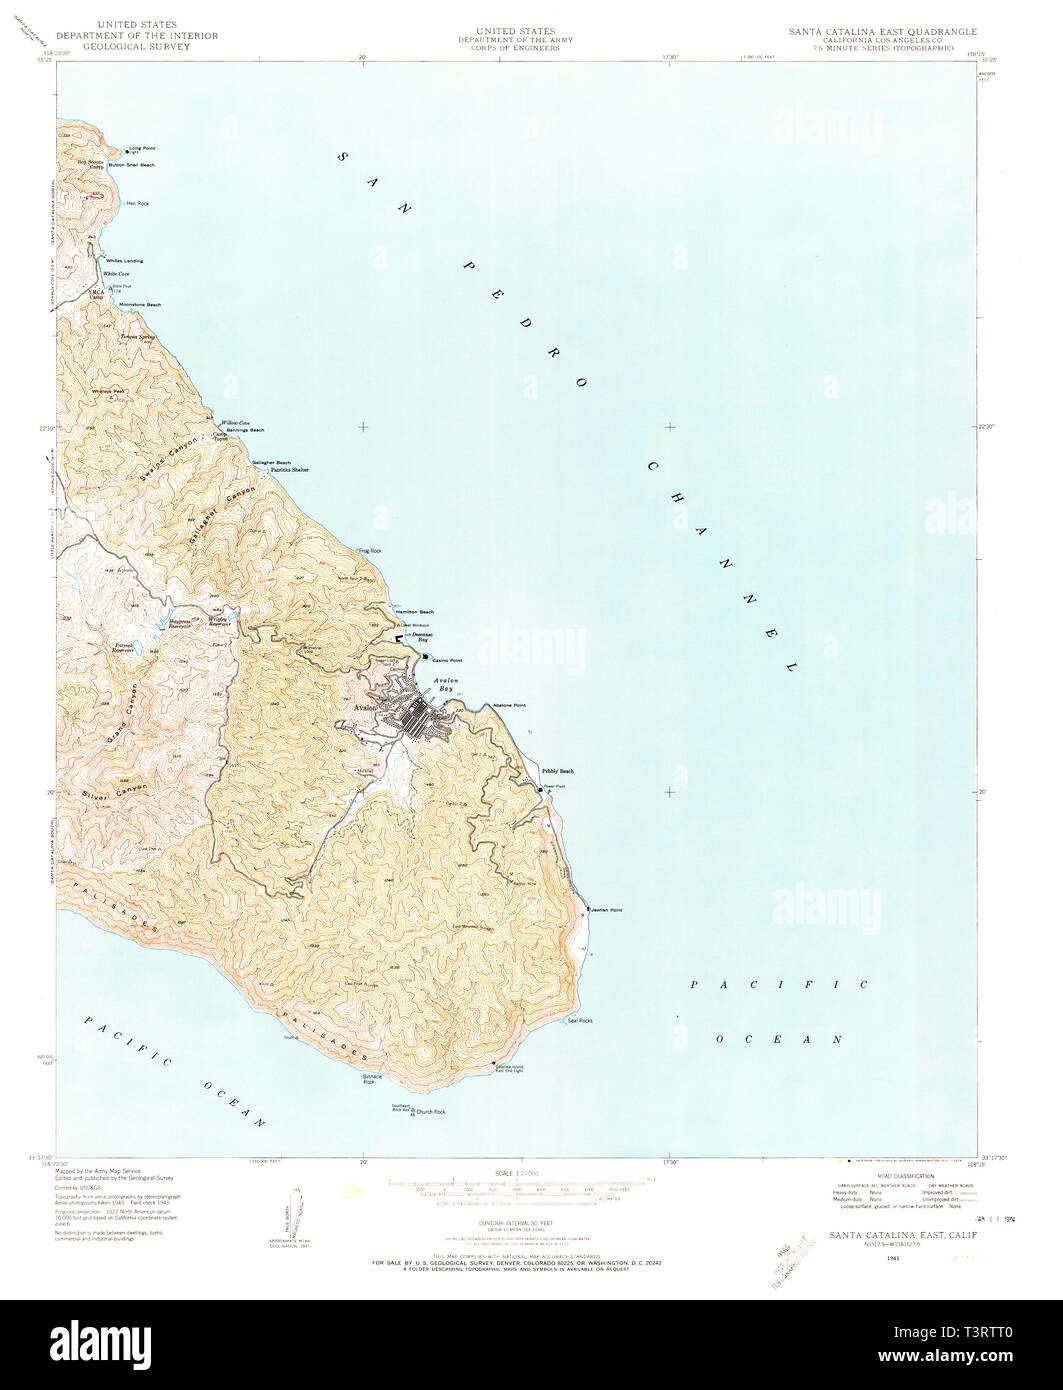 Catalina Map on